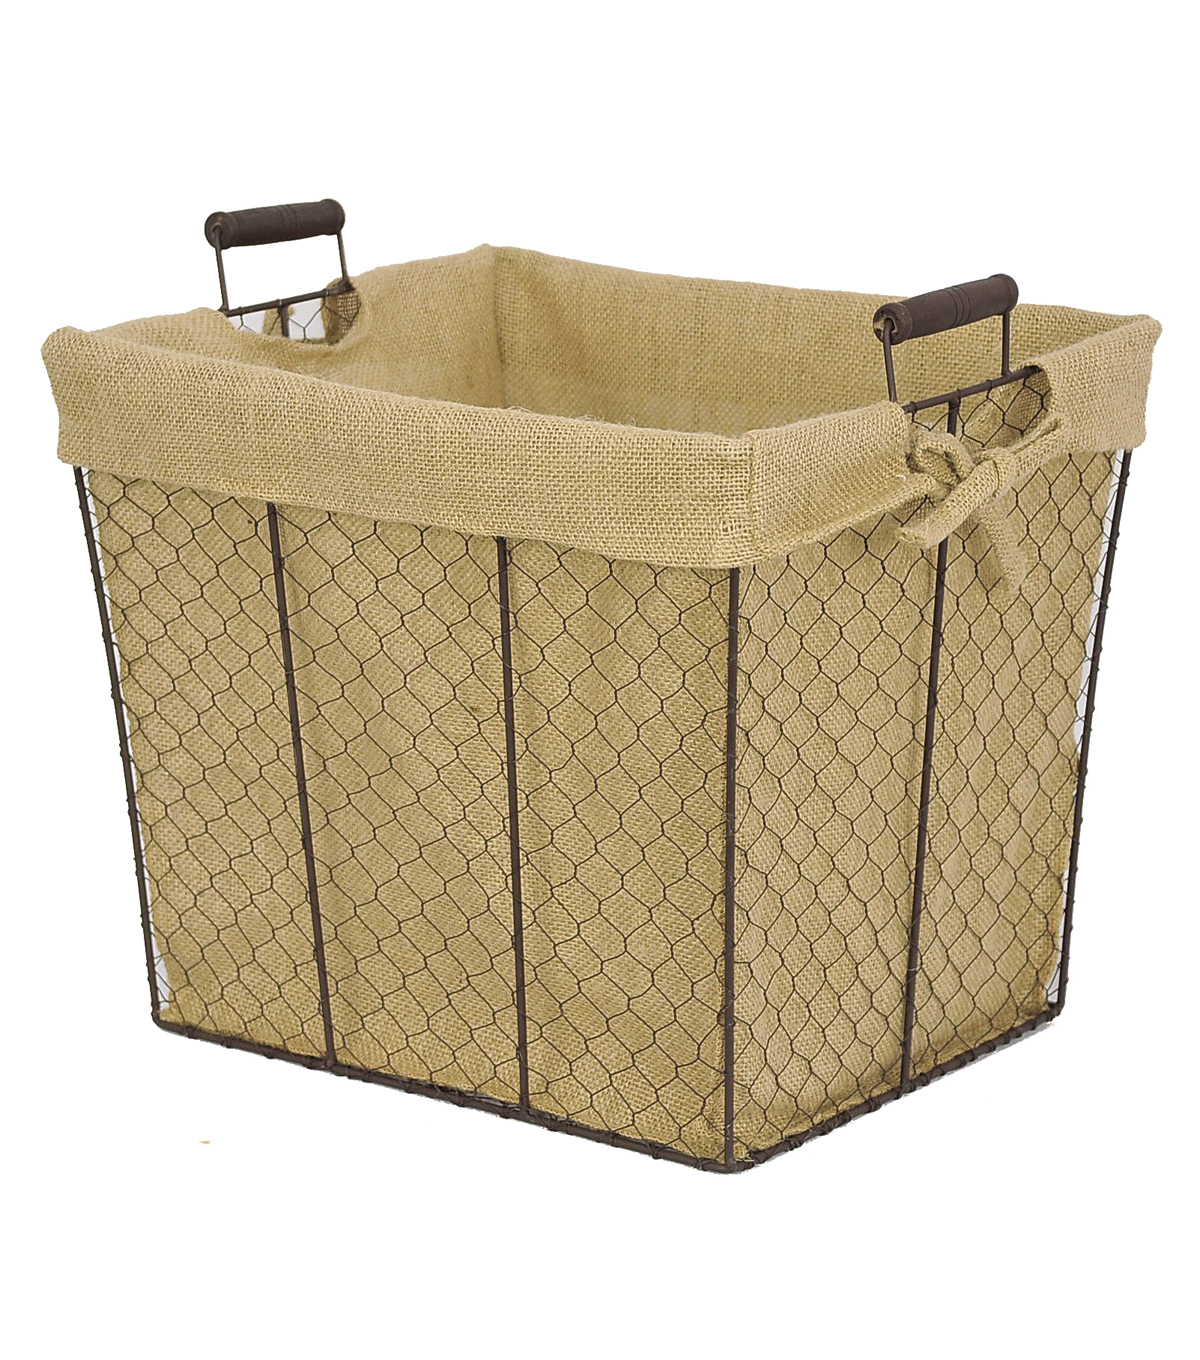 Organizing Essentials™ 15x12 Wire Basket with Burlap Liner